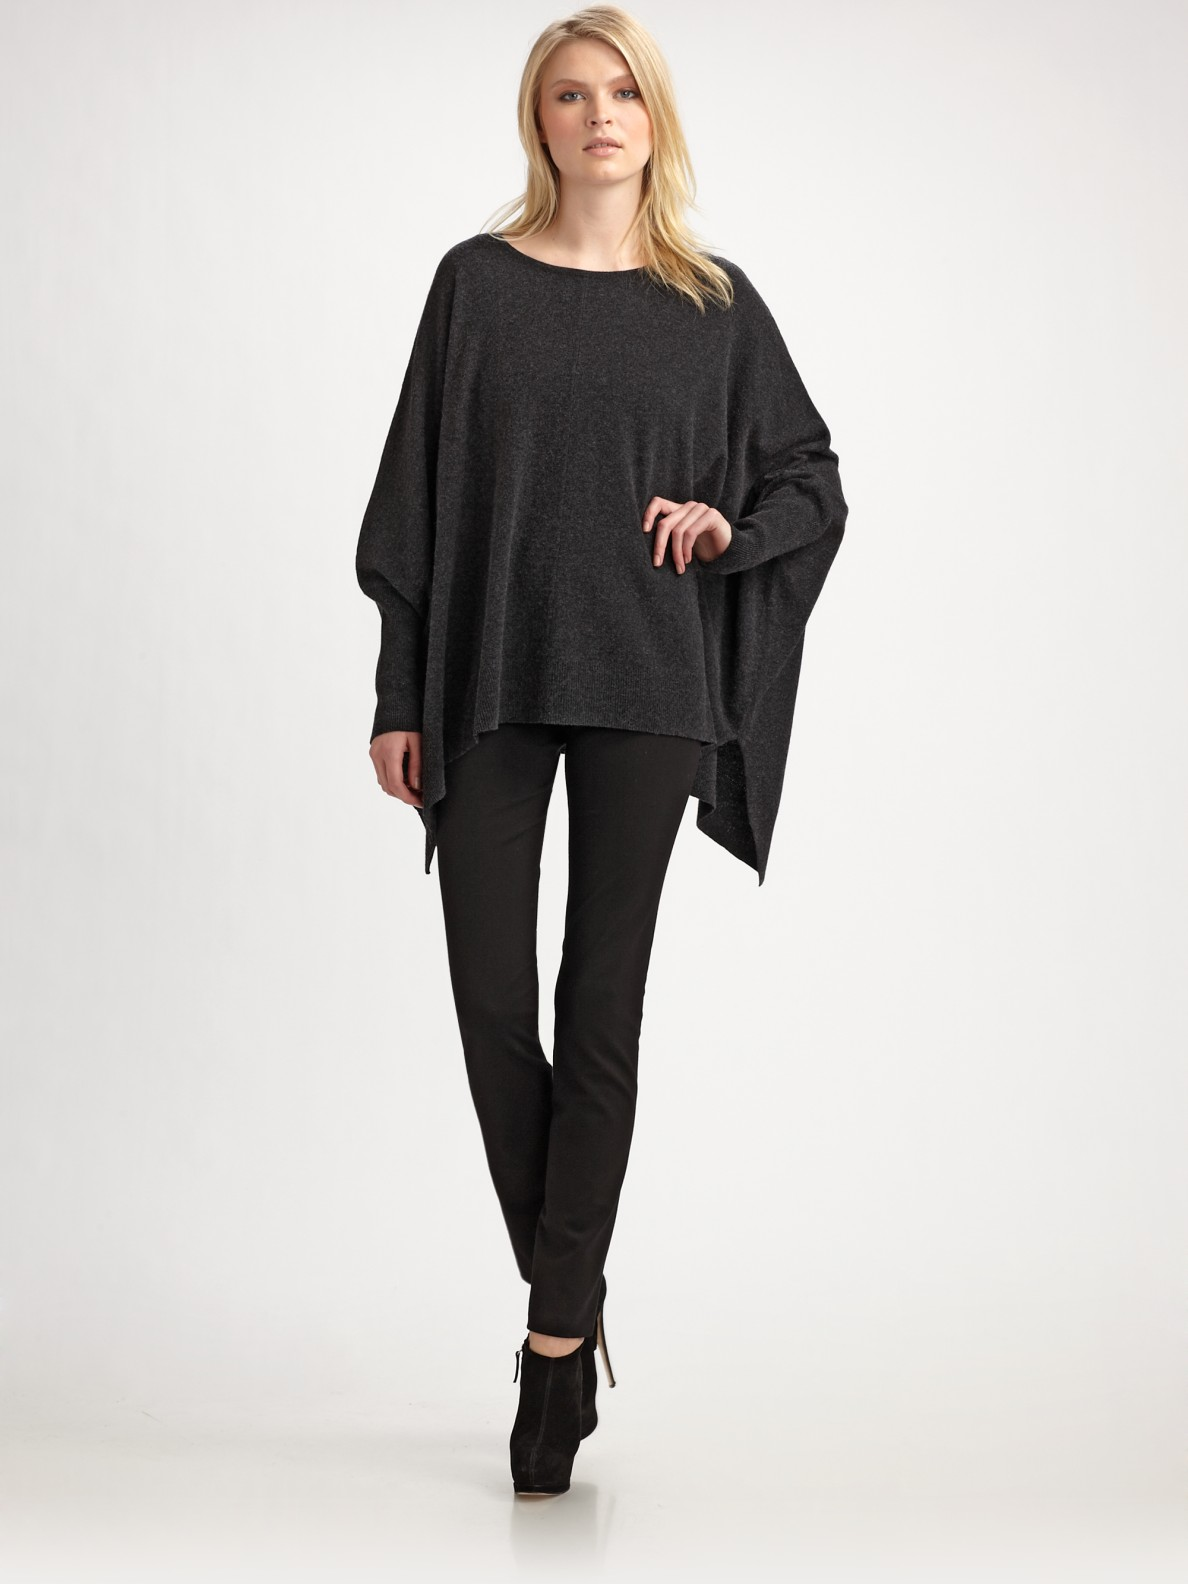 Dkny modern luxe poncho in gray charcoal lyst